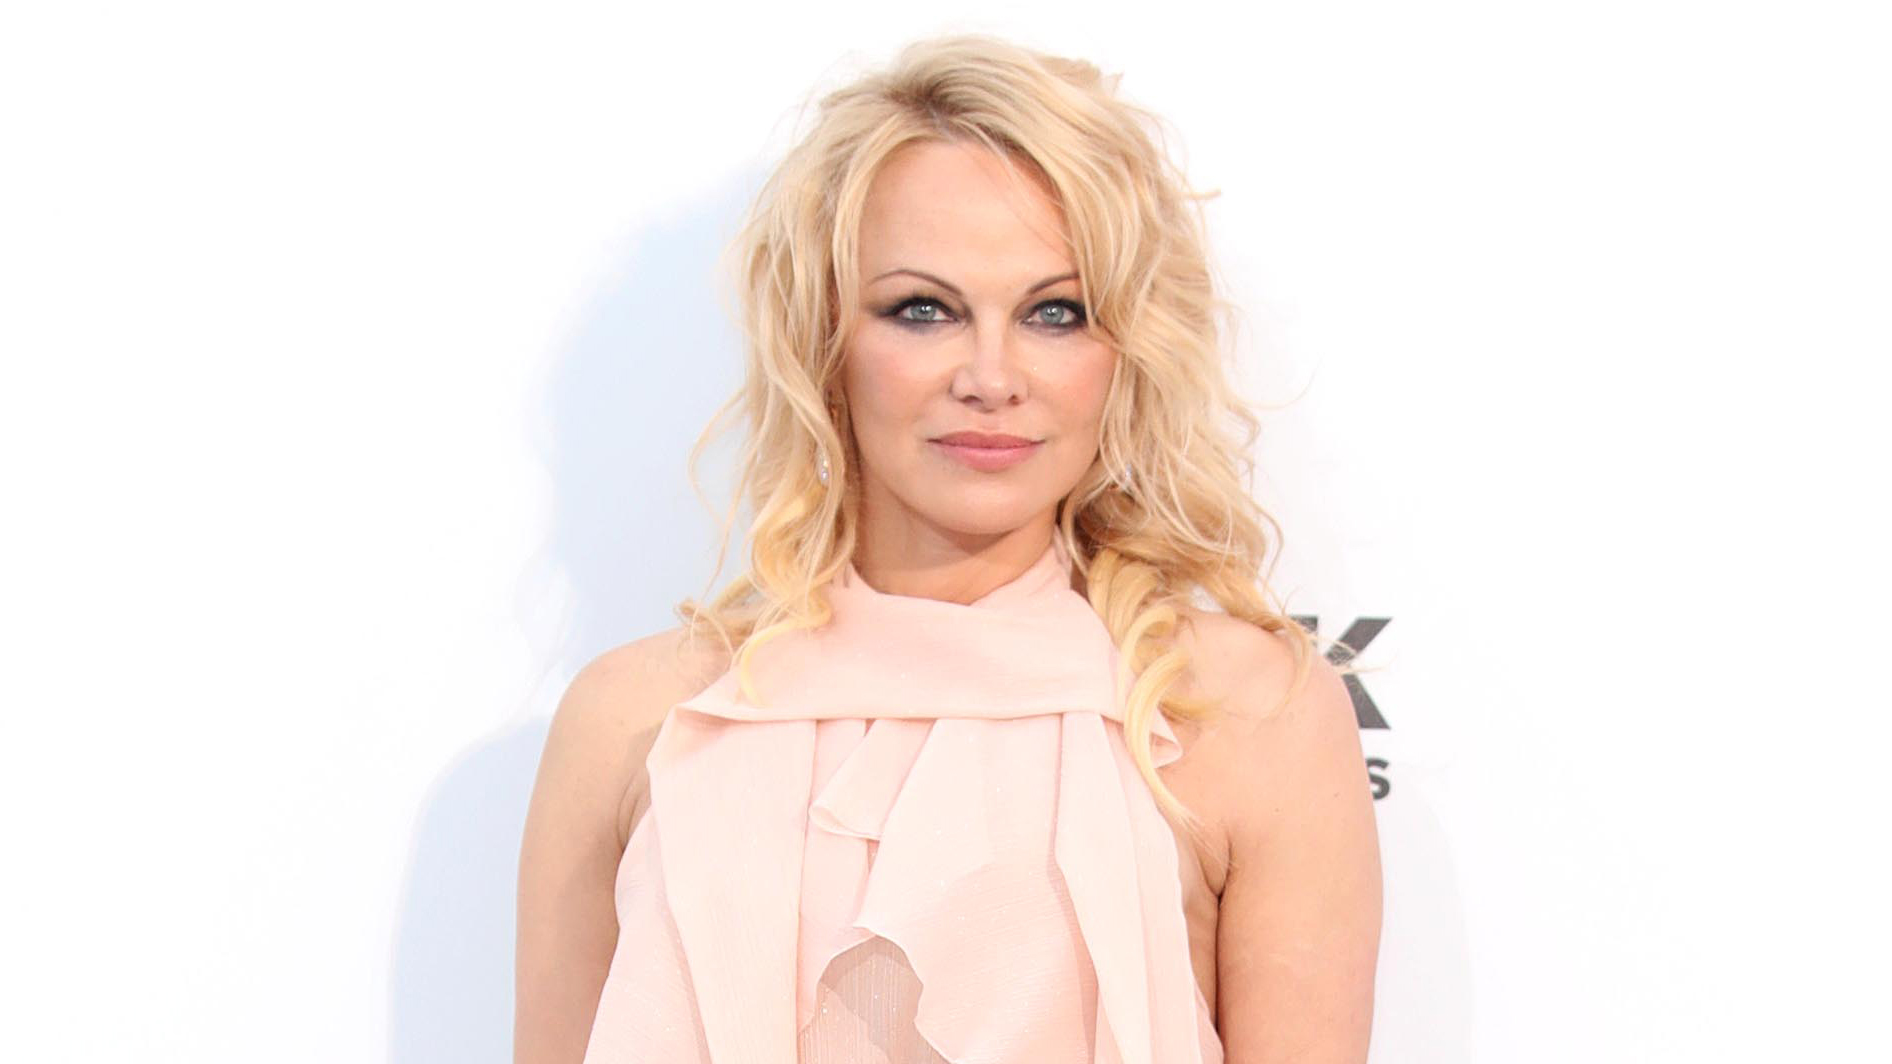 Pamela Anderson - Pamela Anderson's marriages: A look back